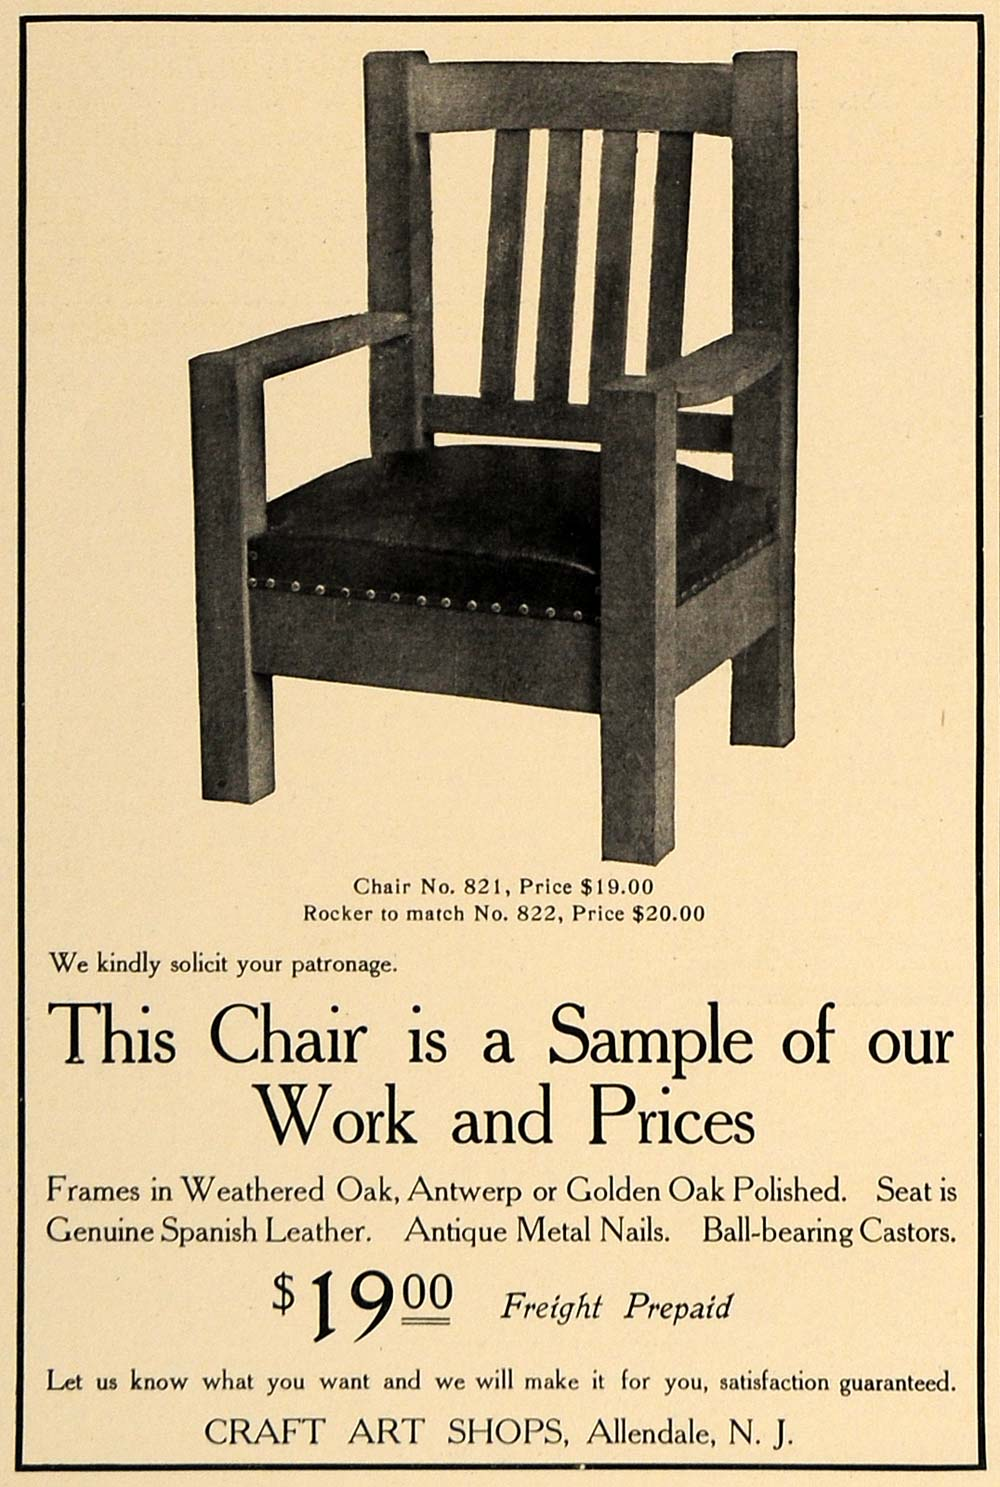 1905 Ad Chair 821 Craft Art Shops Furniture Allendale - ORIGINAL ADVERTISING CL7